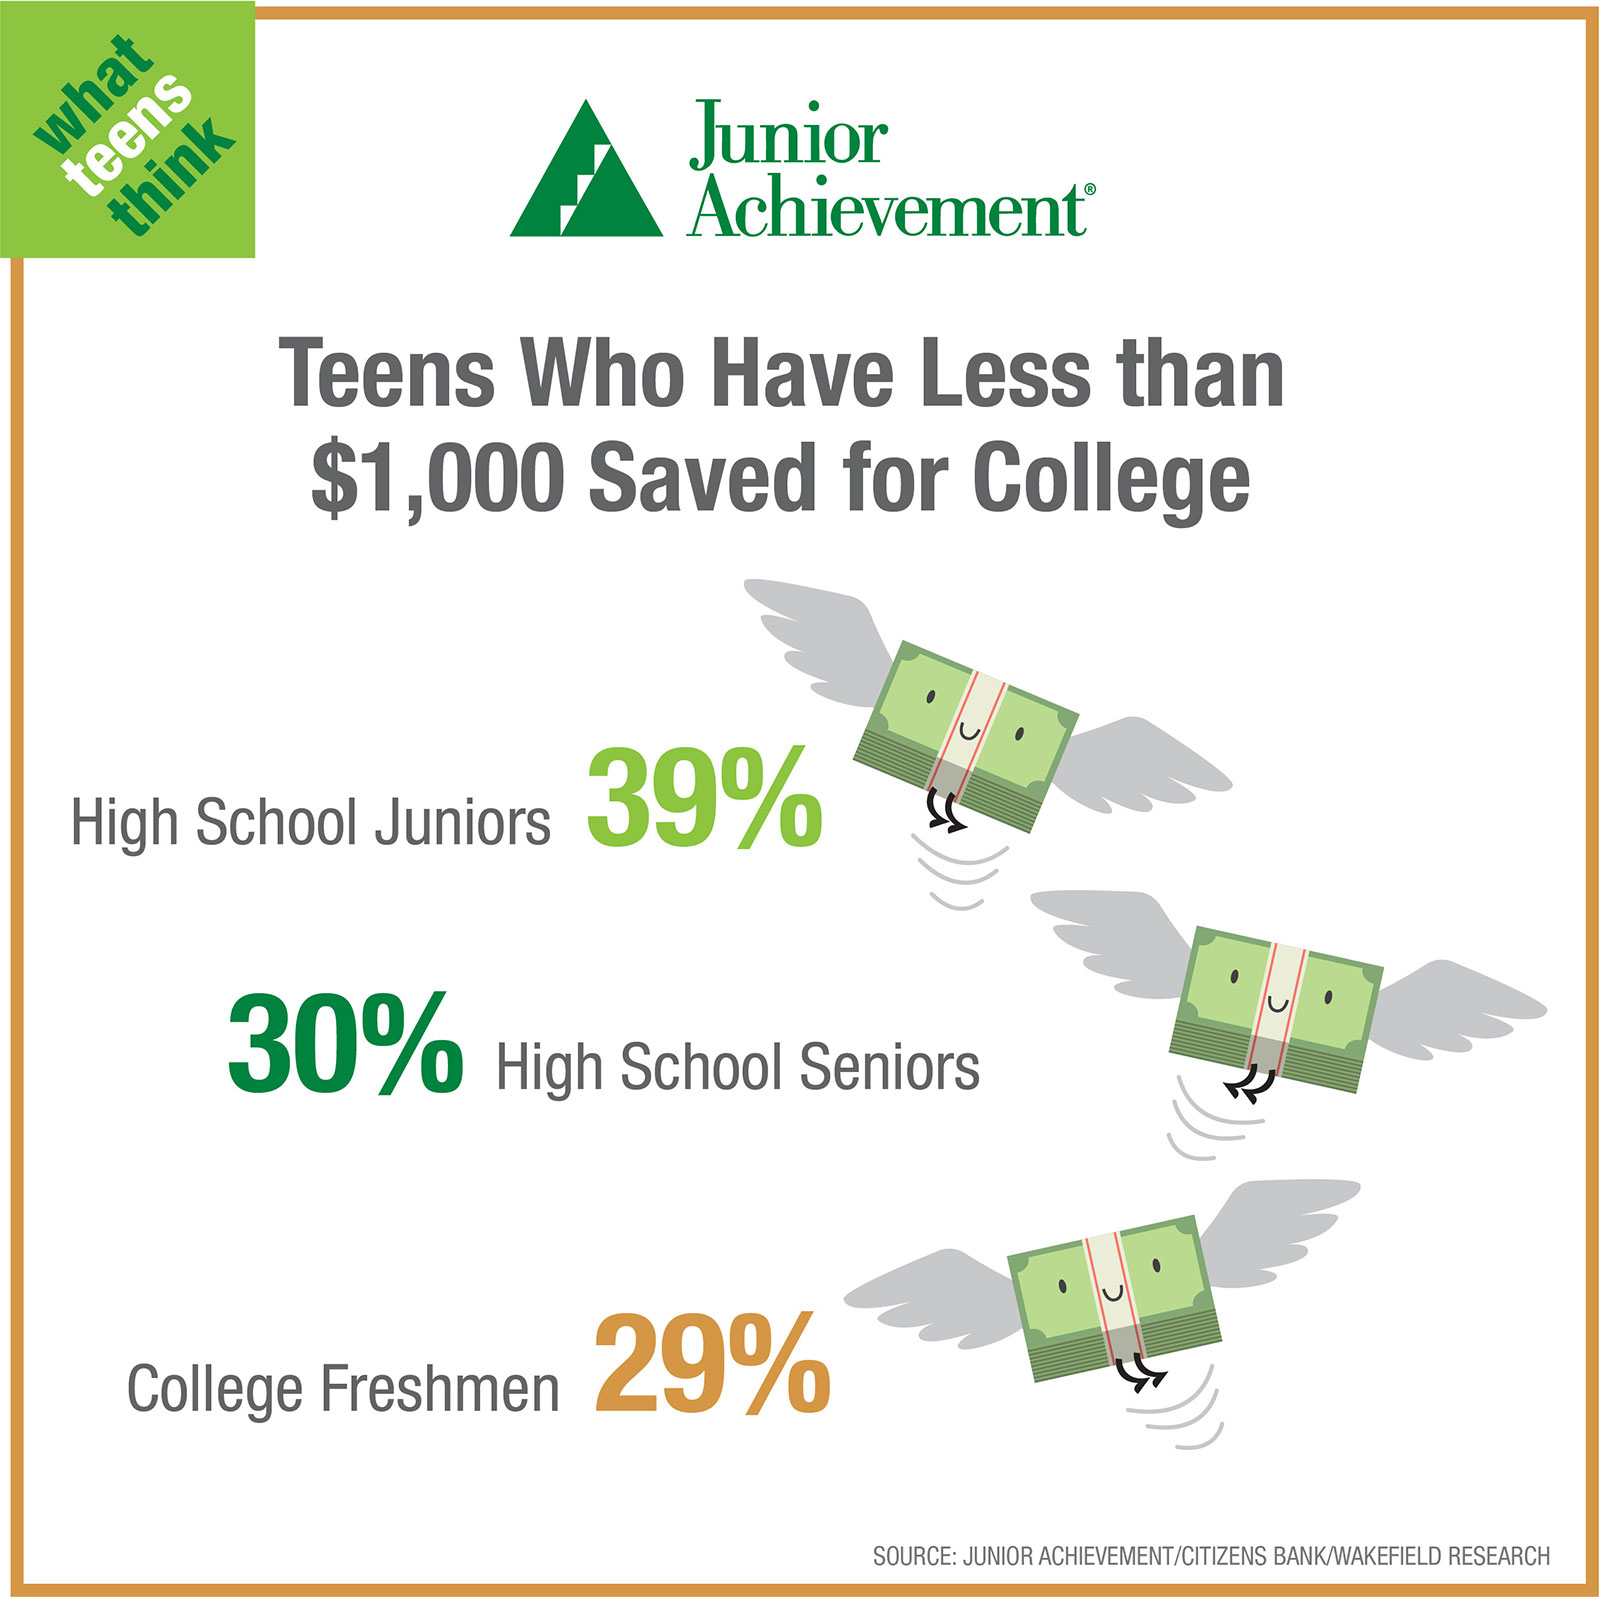 Teens who have saved for college